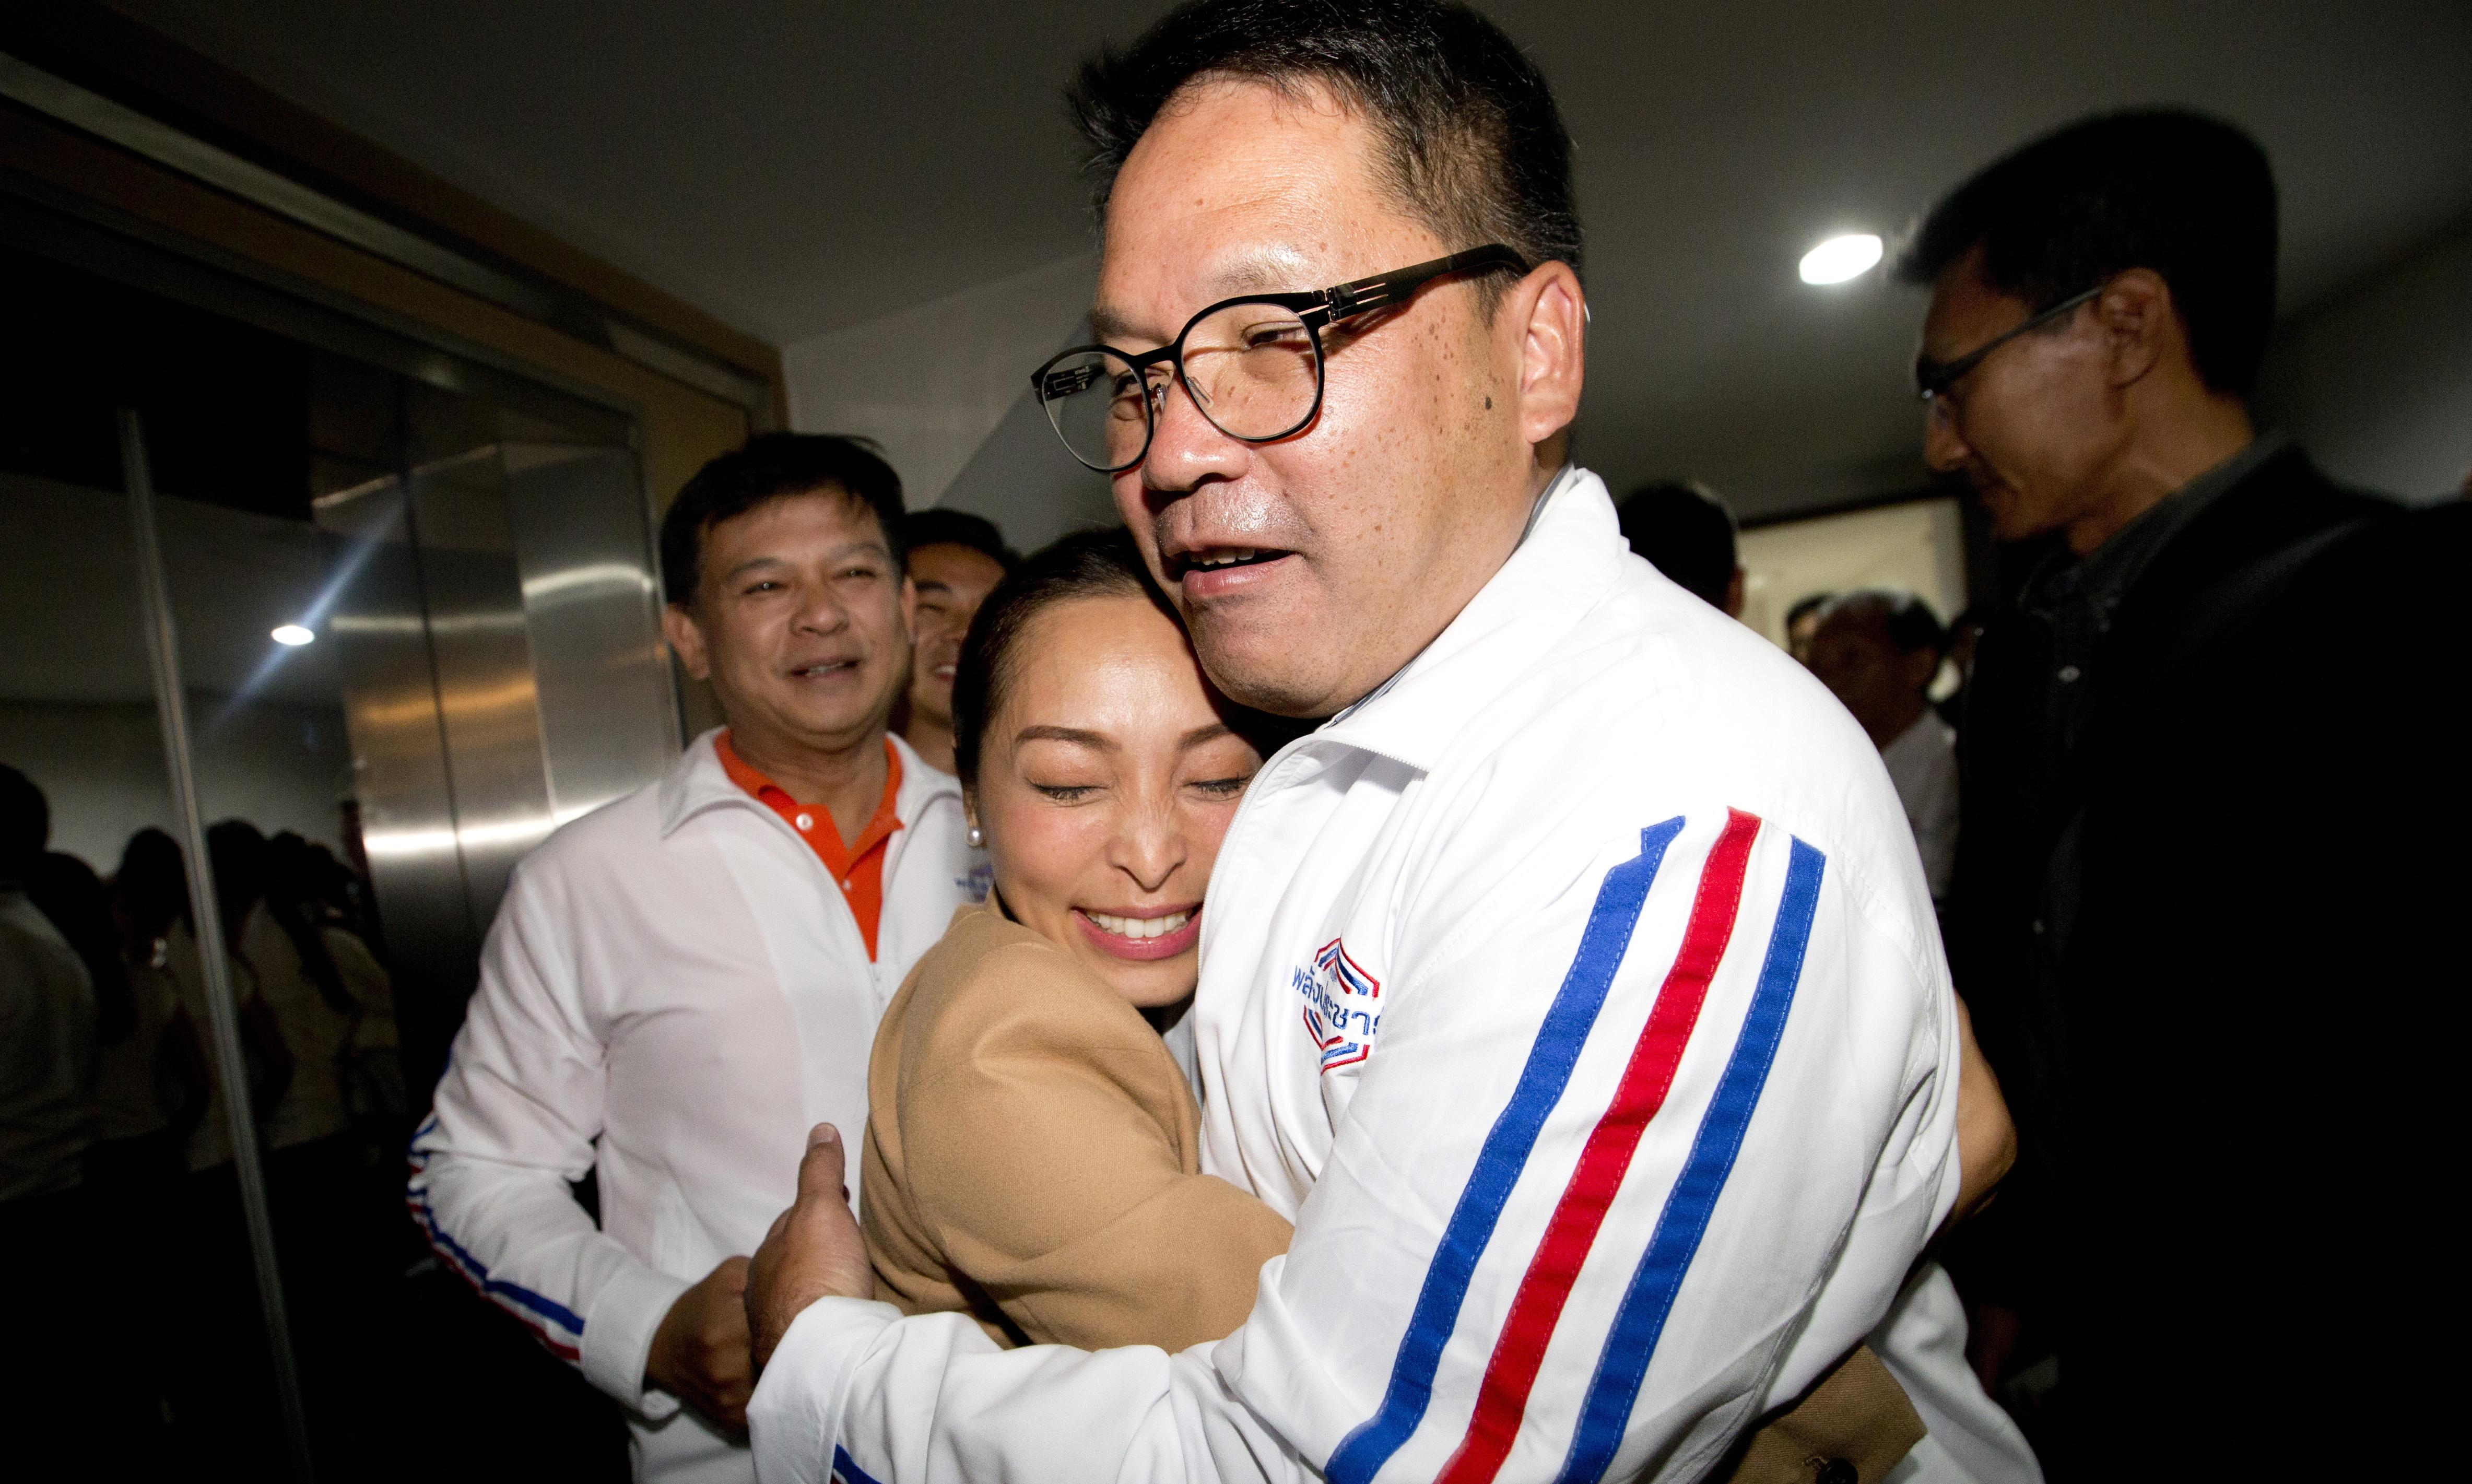 Two parties claim right to lead after 'inconsistent' Thai elections